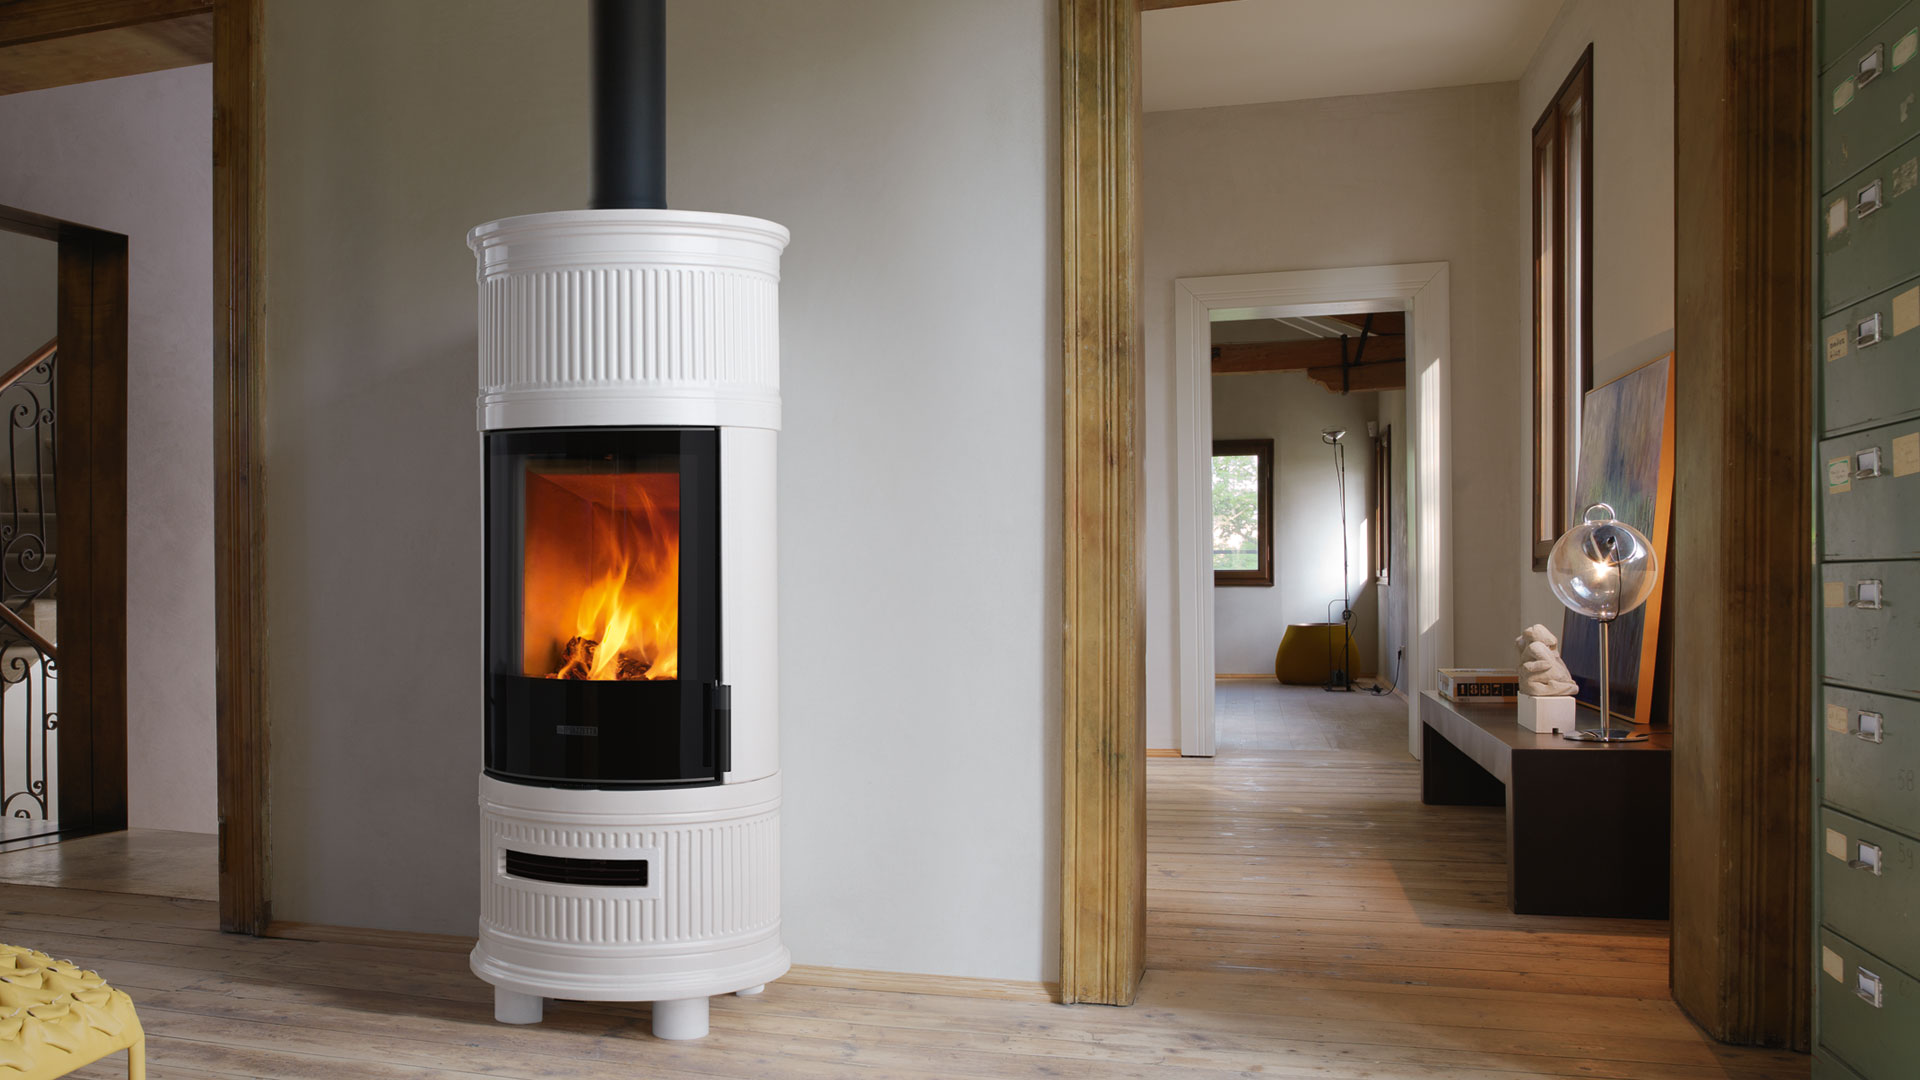 Caminetti Bioetanolo Reggio Emilia fireplaces and stoves | piazzetta